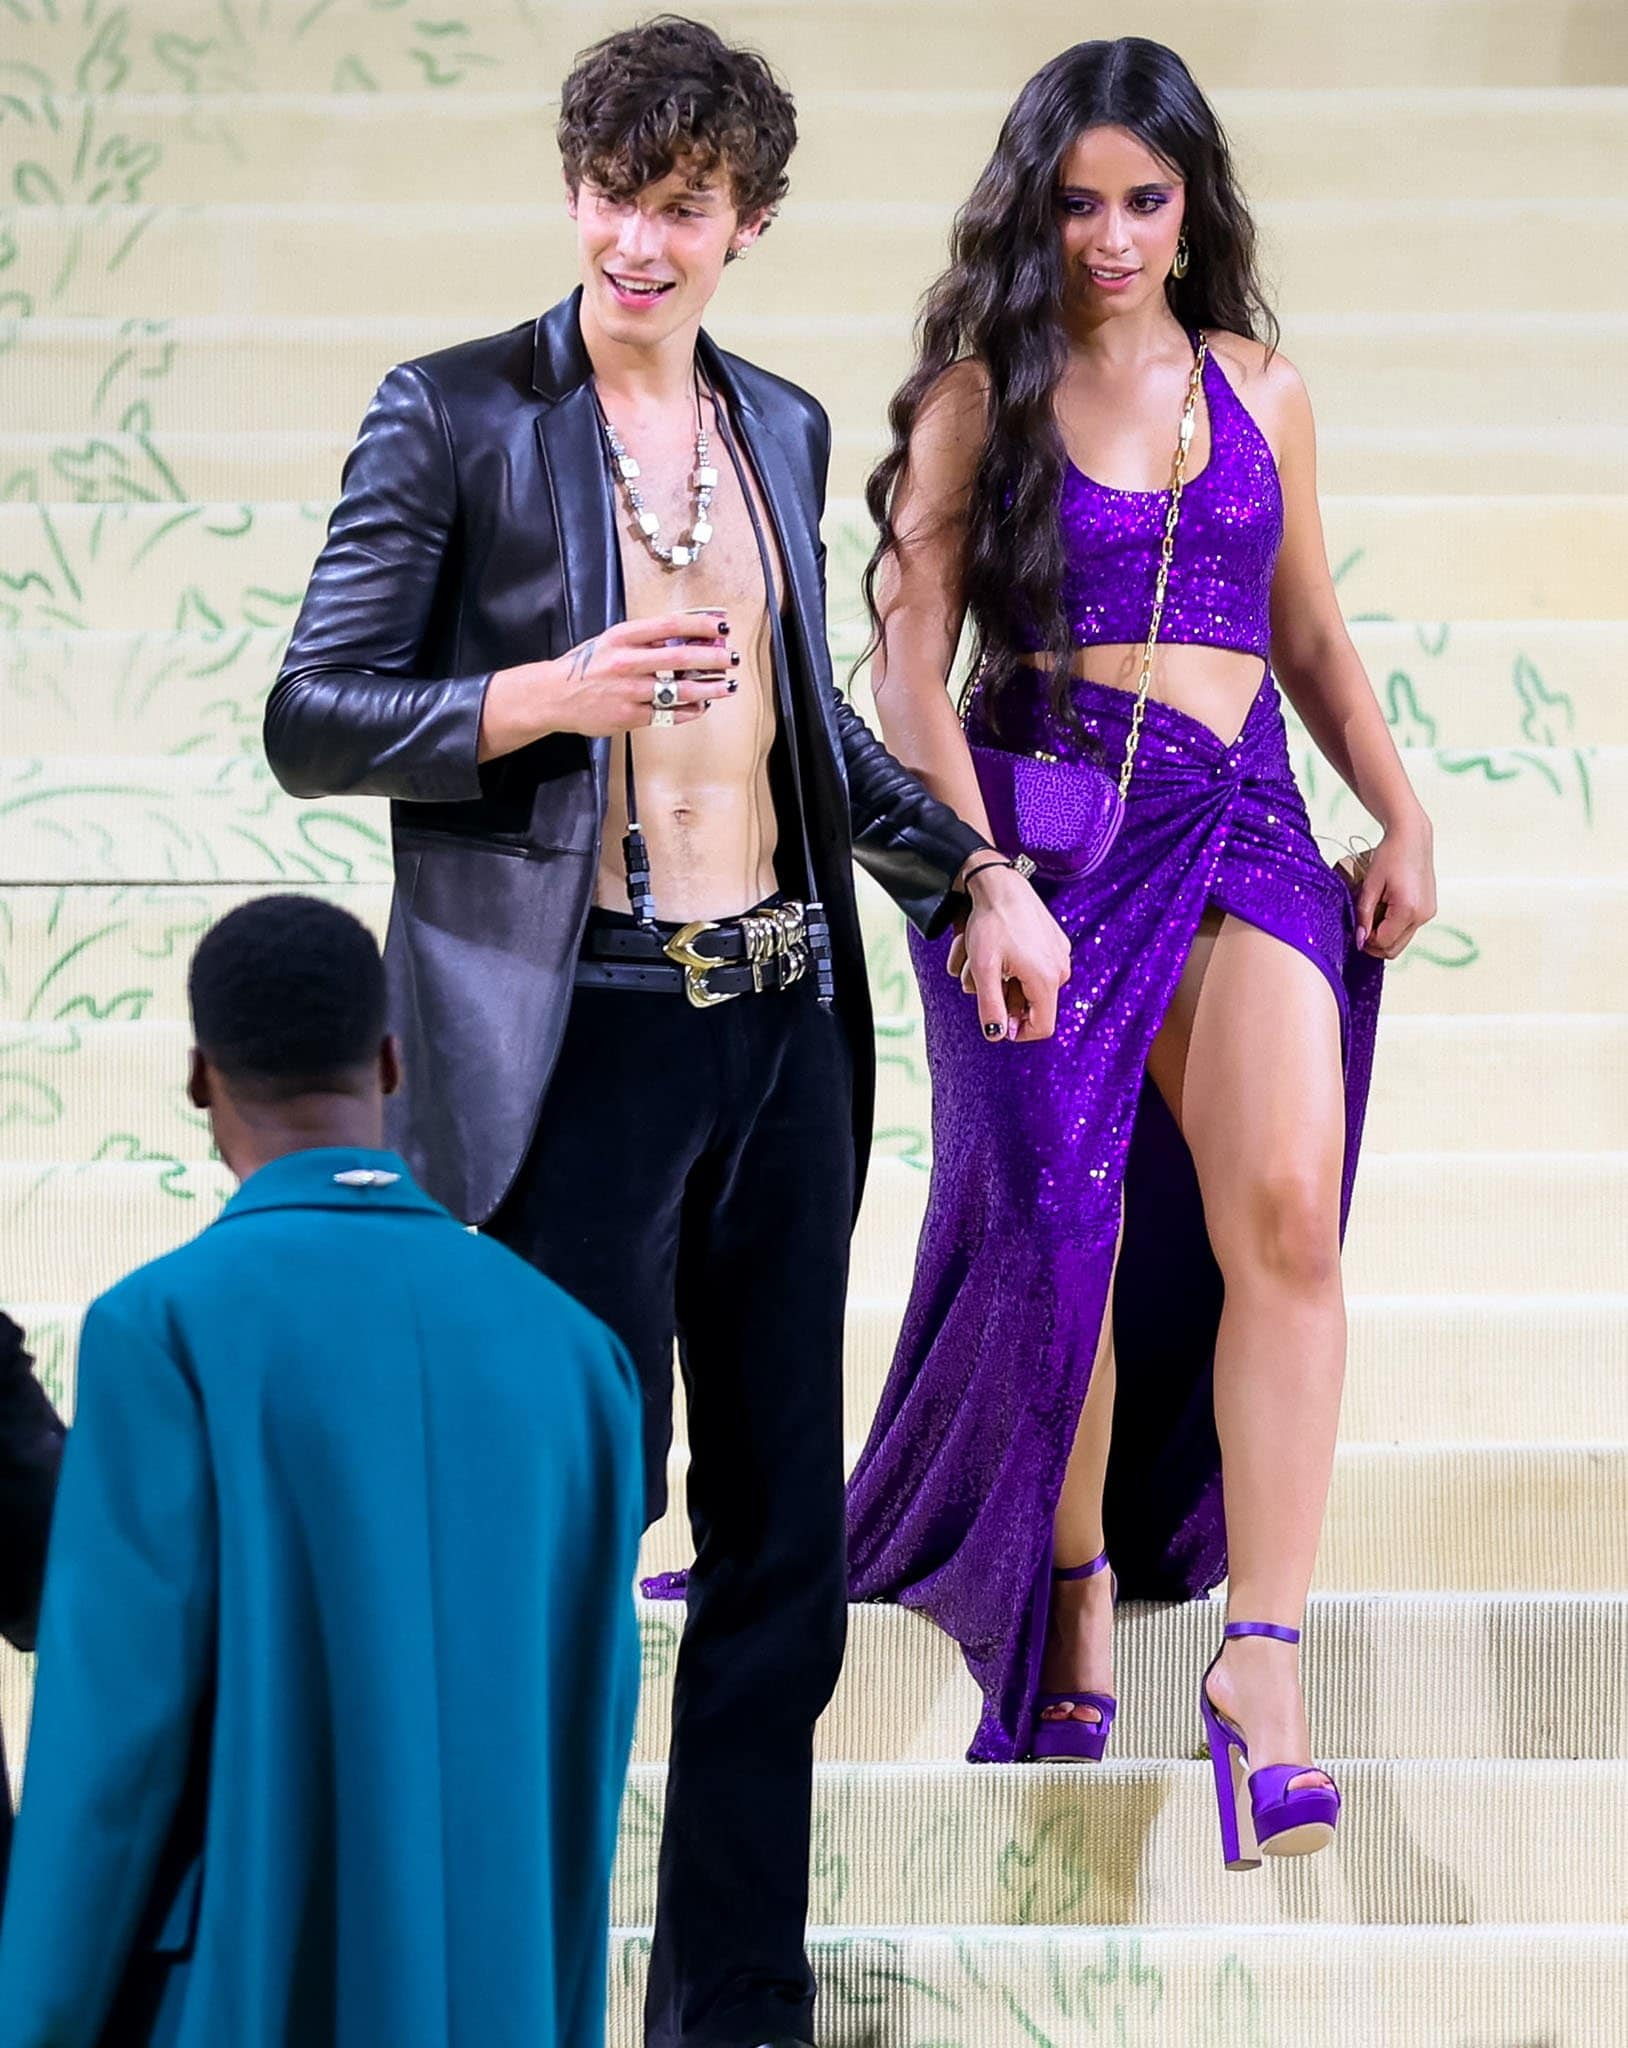 Shawn Mendes and Camila Cabello channel Sonny and Cher at the 2021 Met Gala in New York City on September 13, 2021